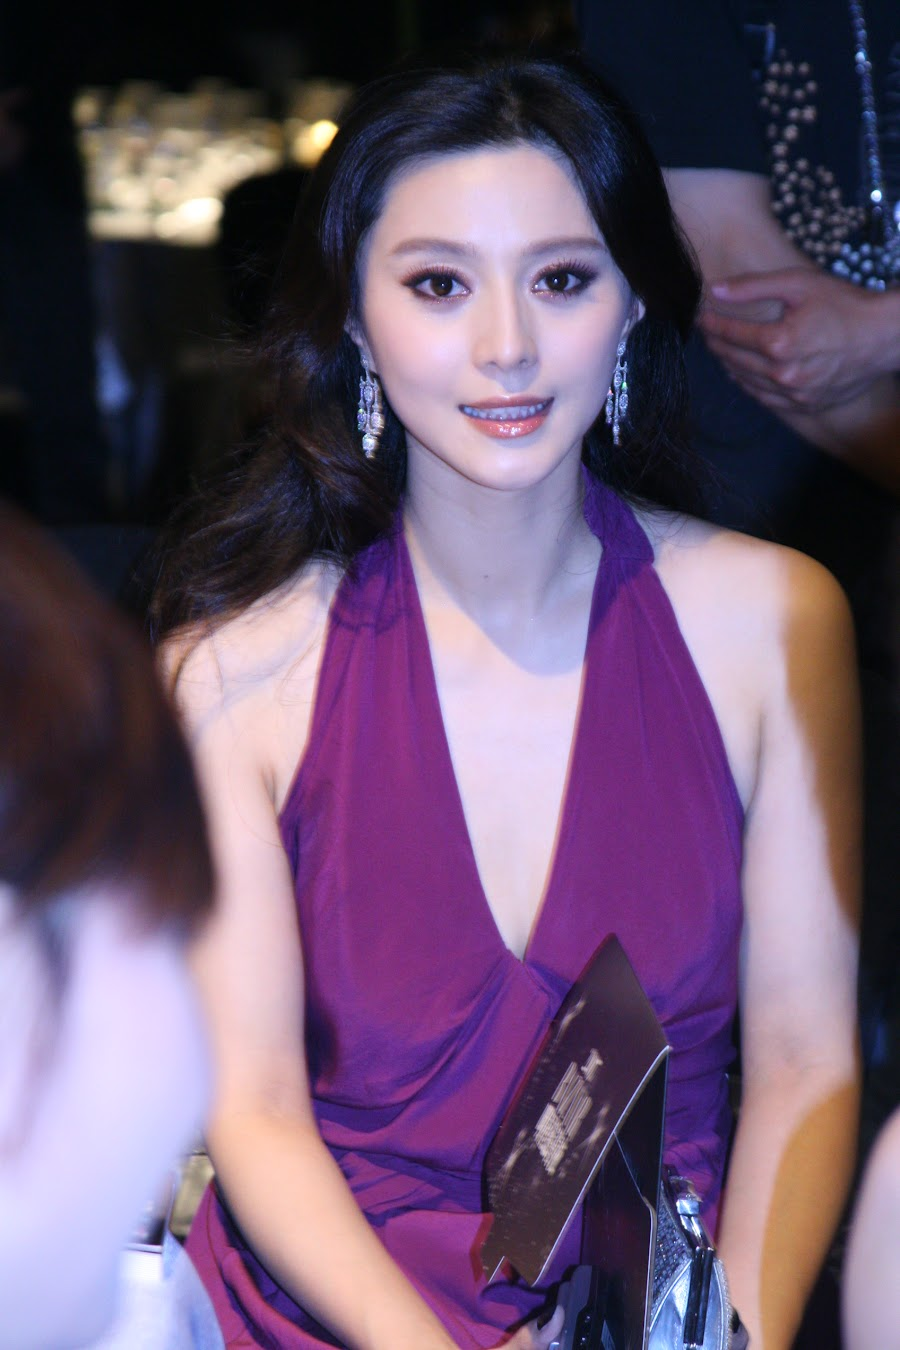 Fan Bingbing - Chinese actress and singer